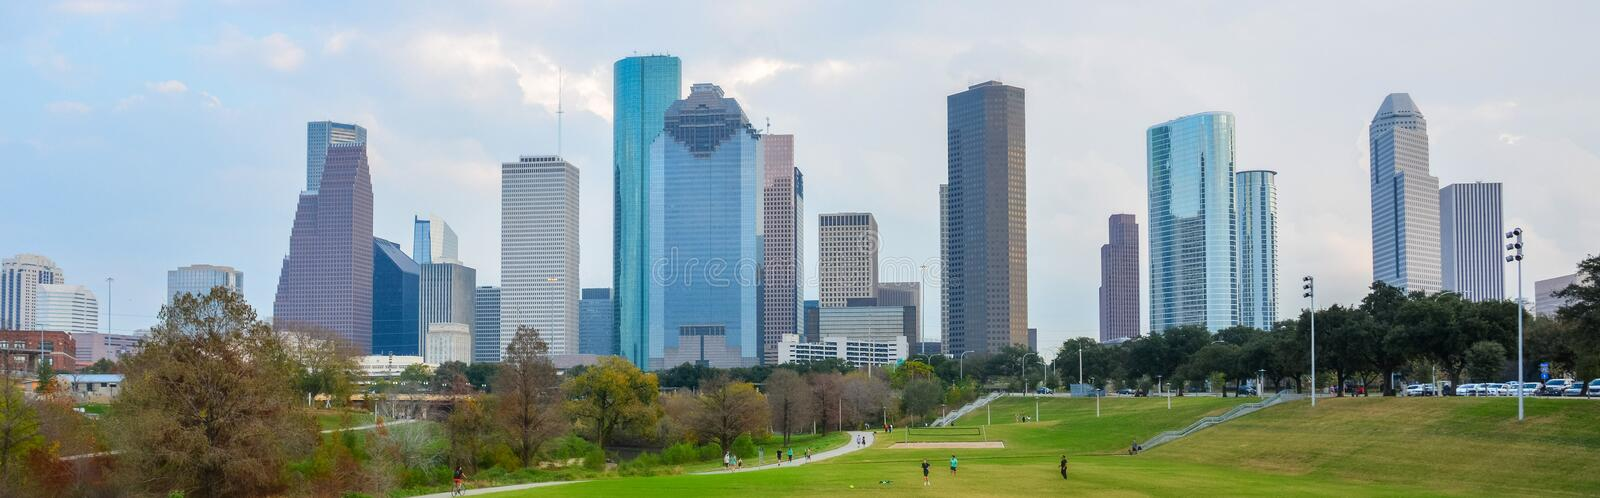 Skyline no dowtown Houston, TX fotografia de stock royalty free